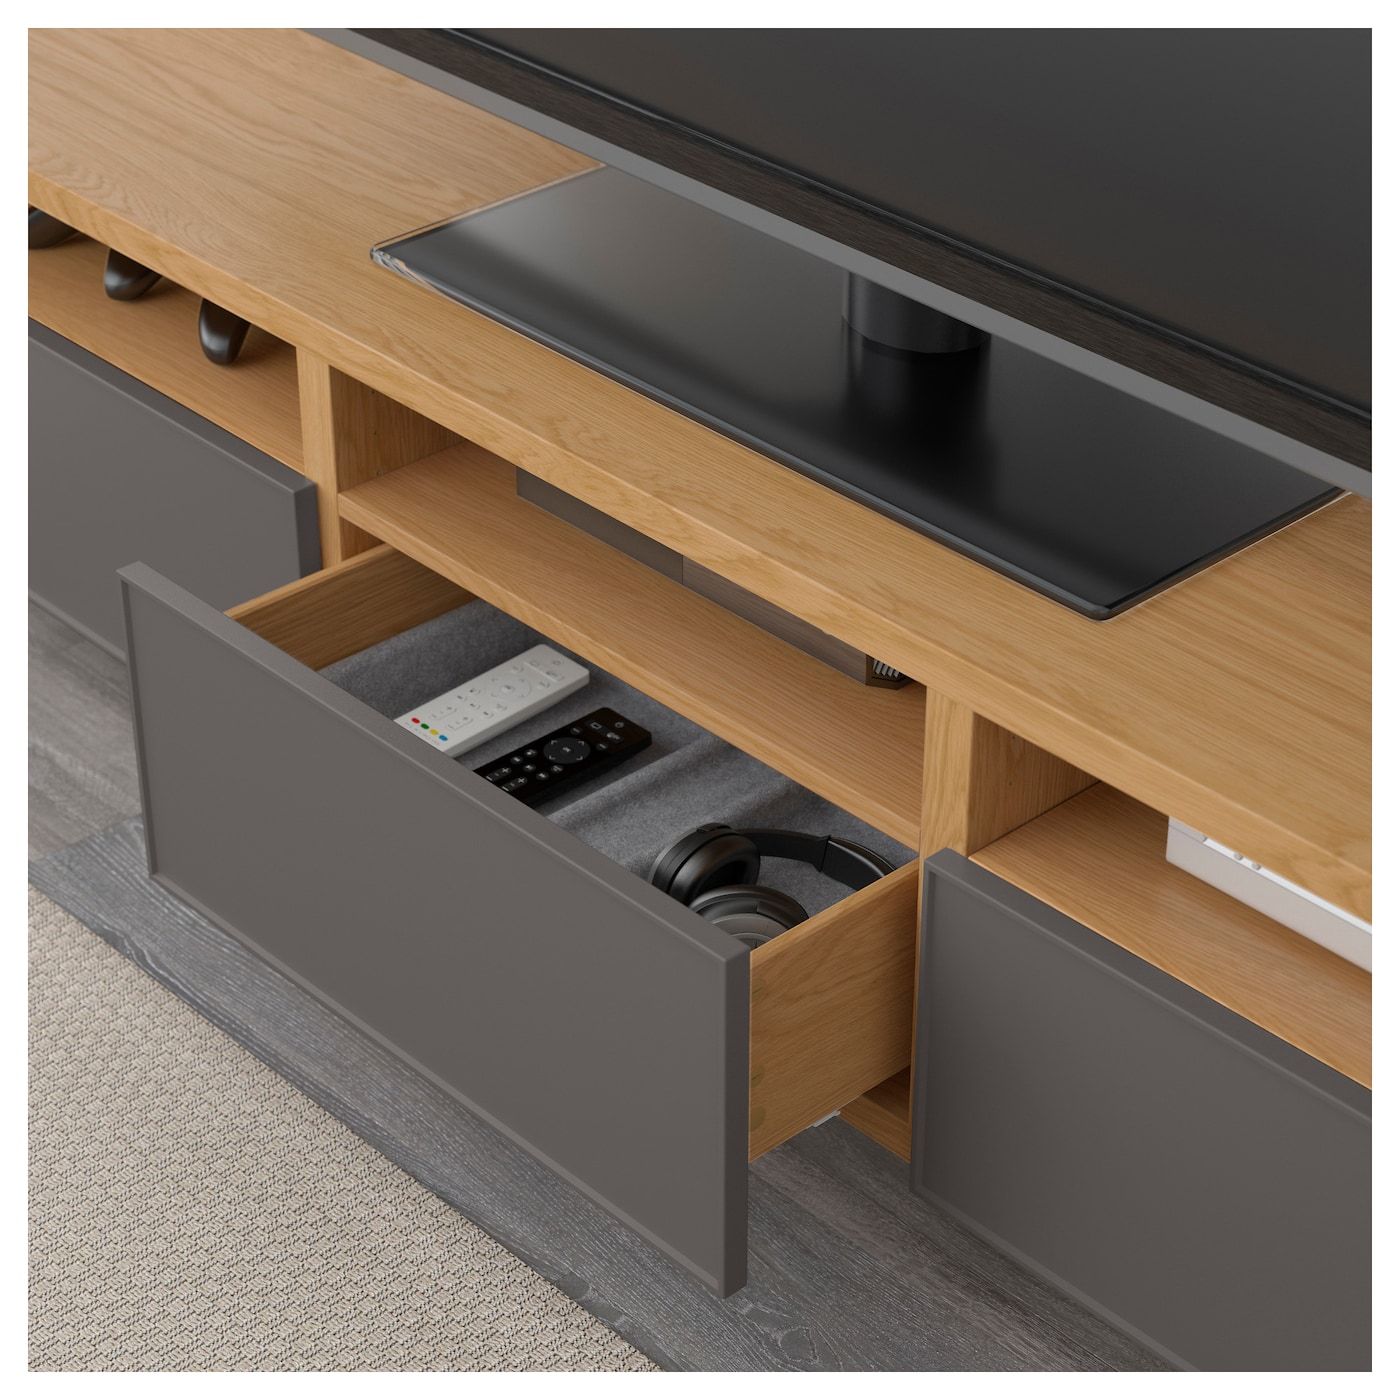 IKEA BESTÅ TV bench with drawers Three large drawers make it easy to keep your belongings organised.